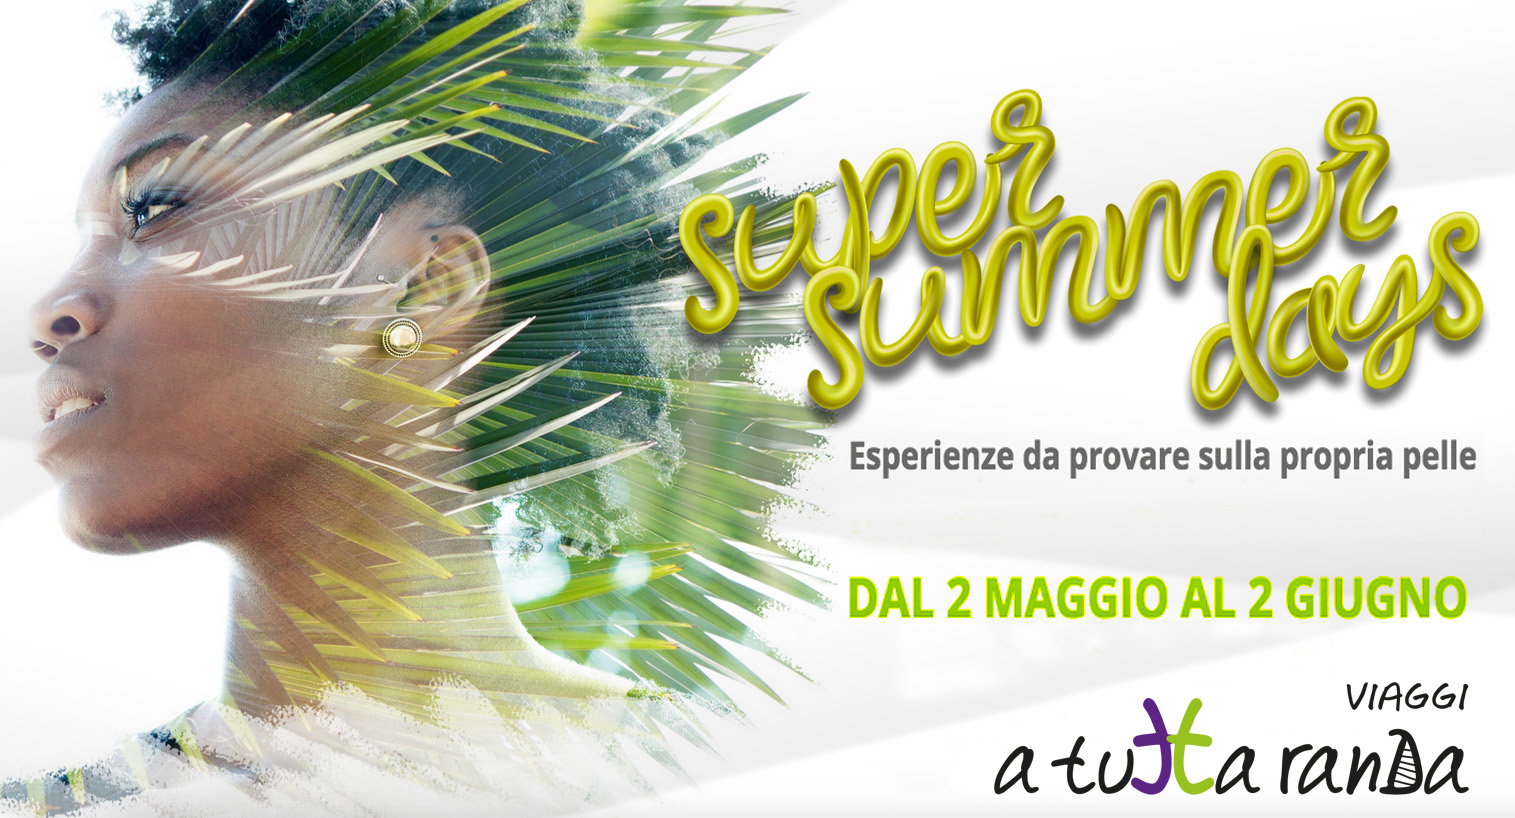 Sono arrivati i Super Summer Days!